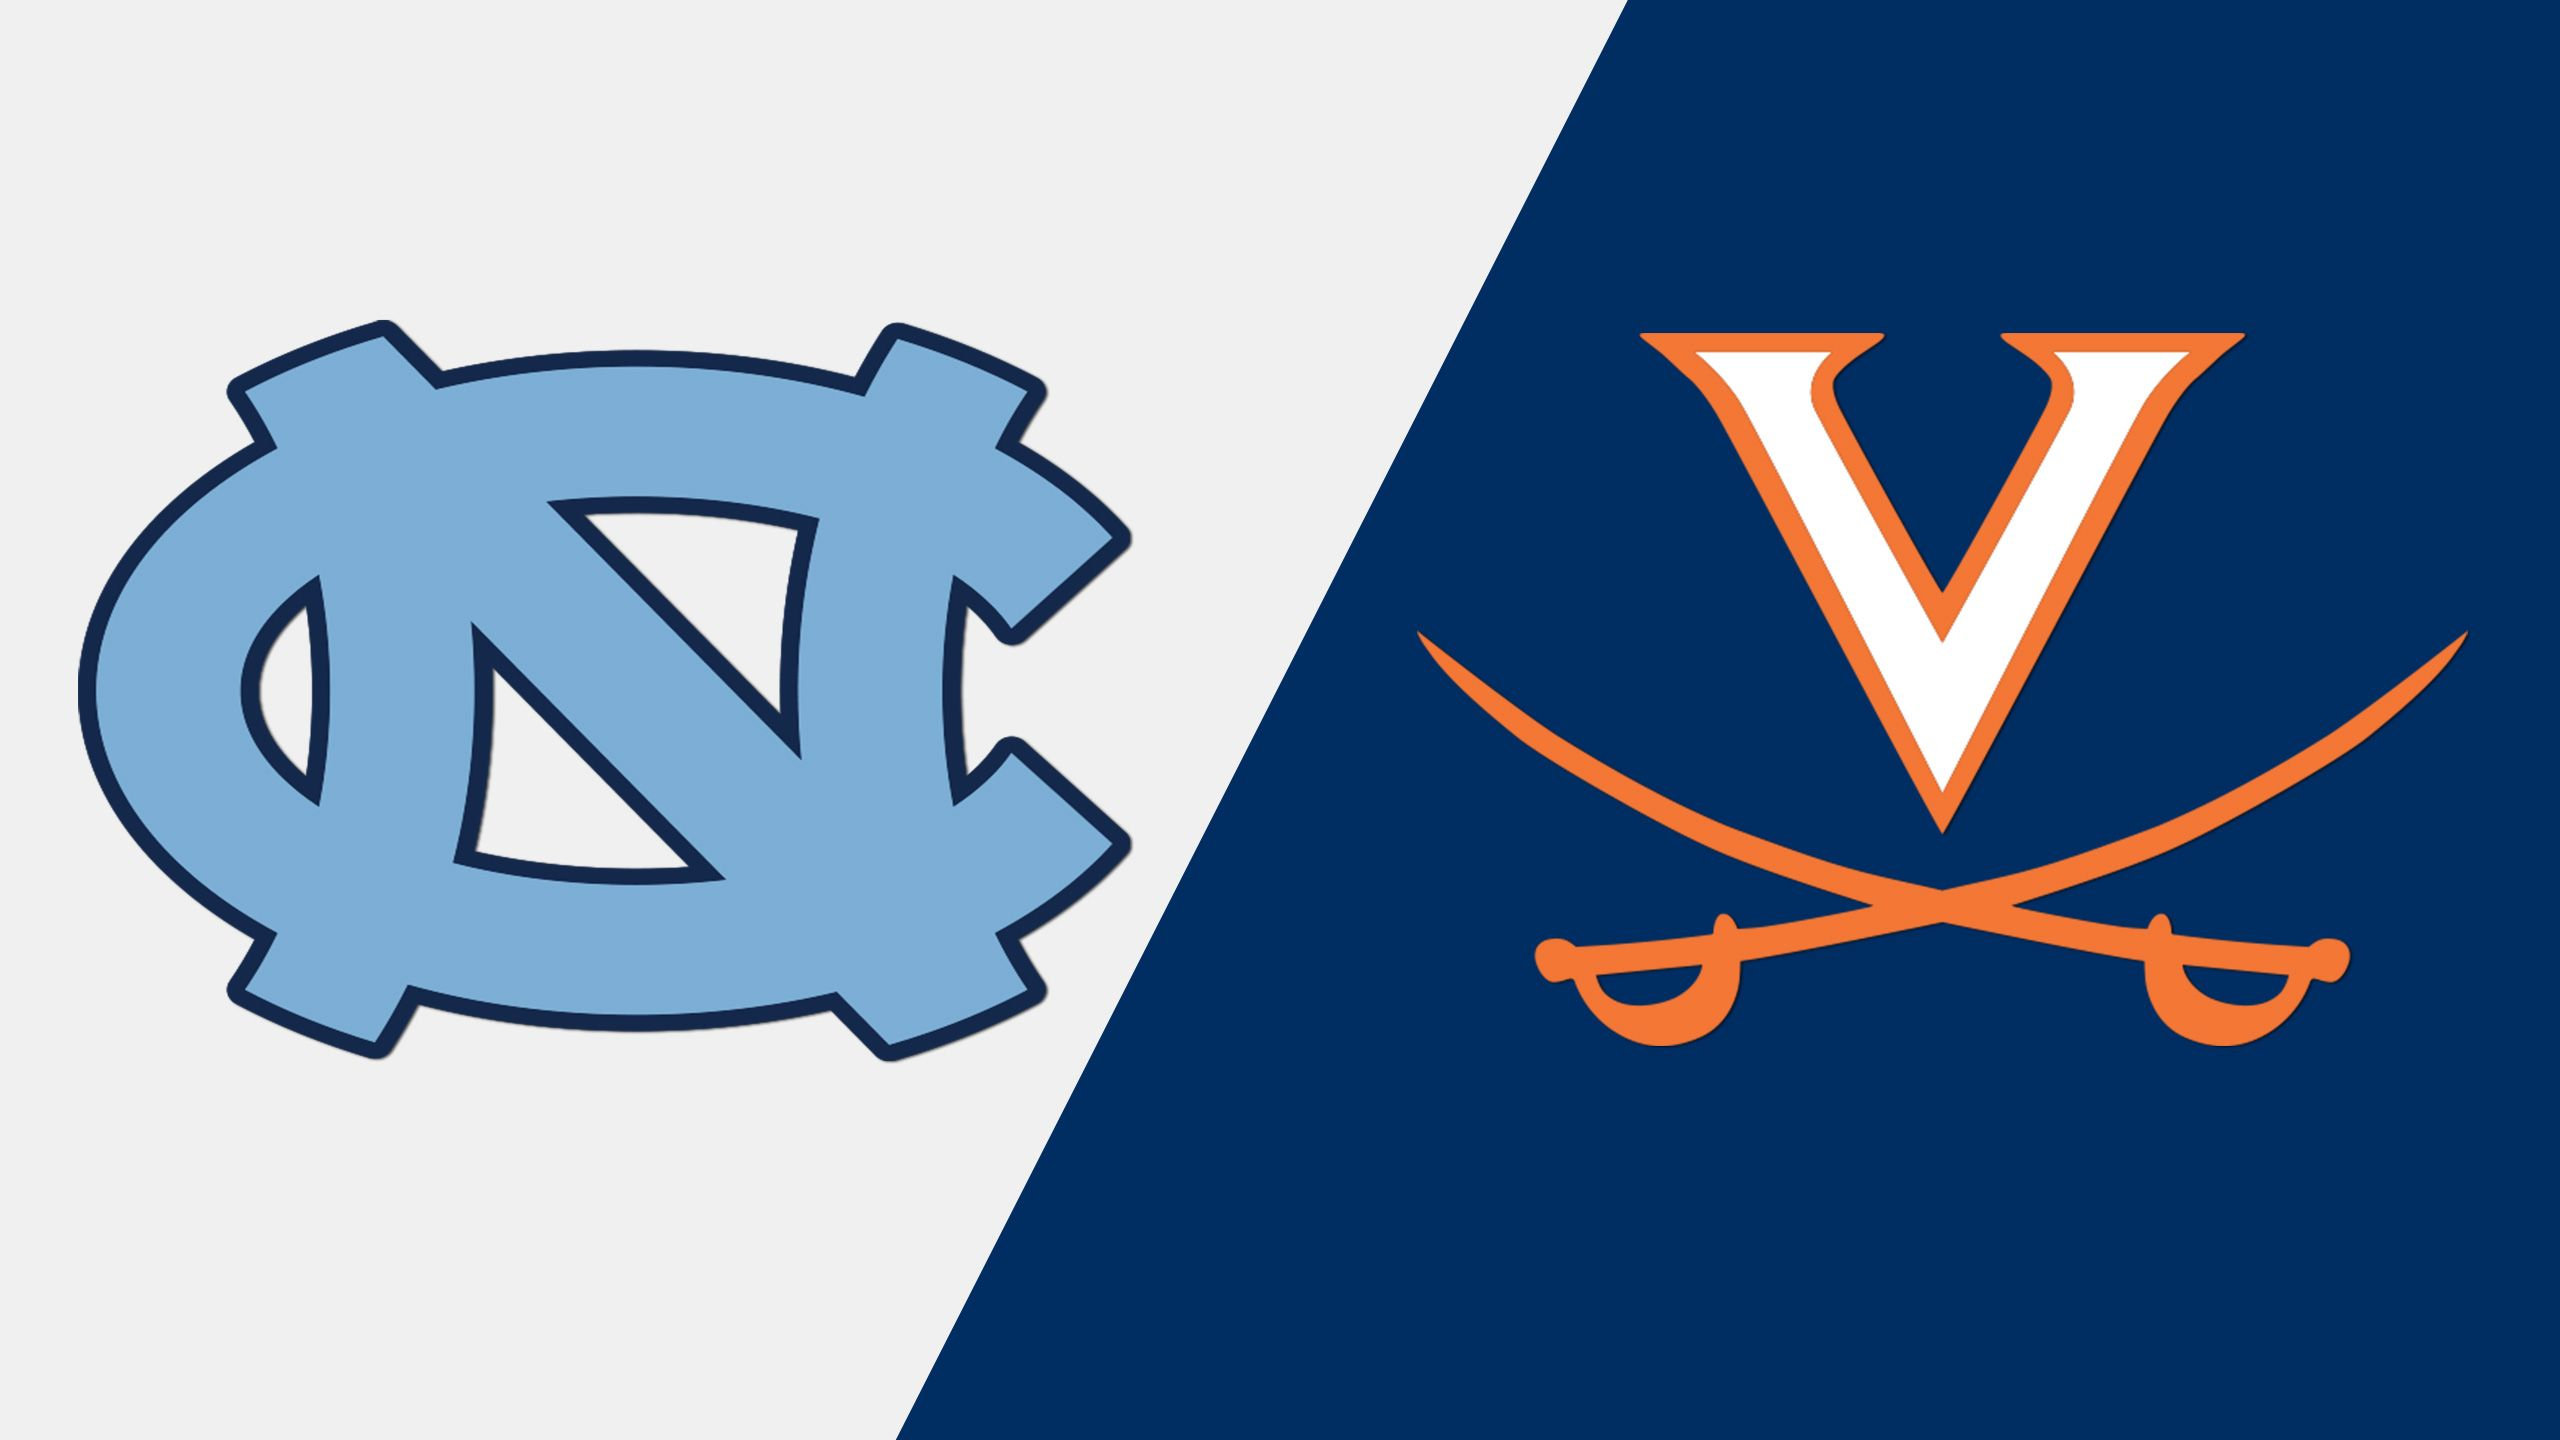 #22 North Carolina vs. Virginia (Baseball)